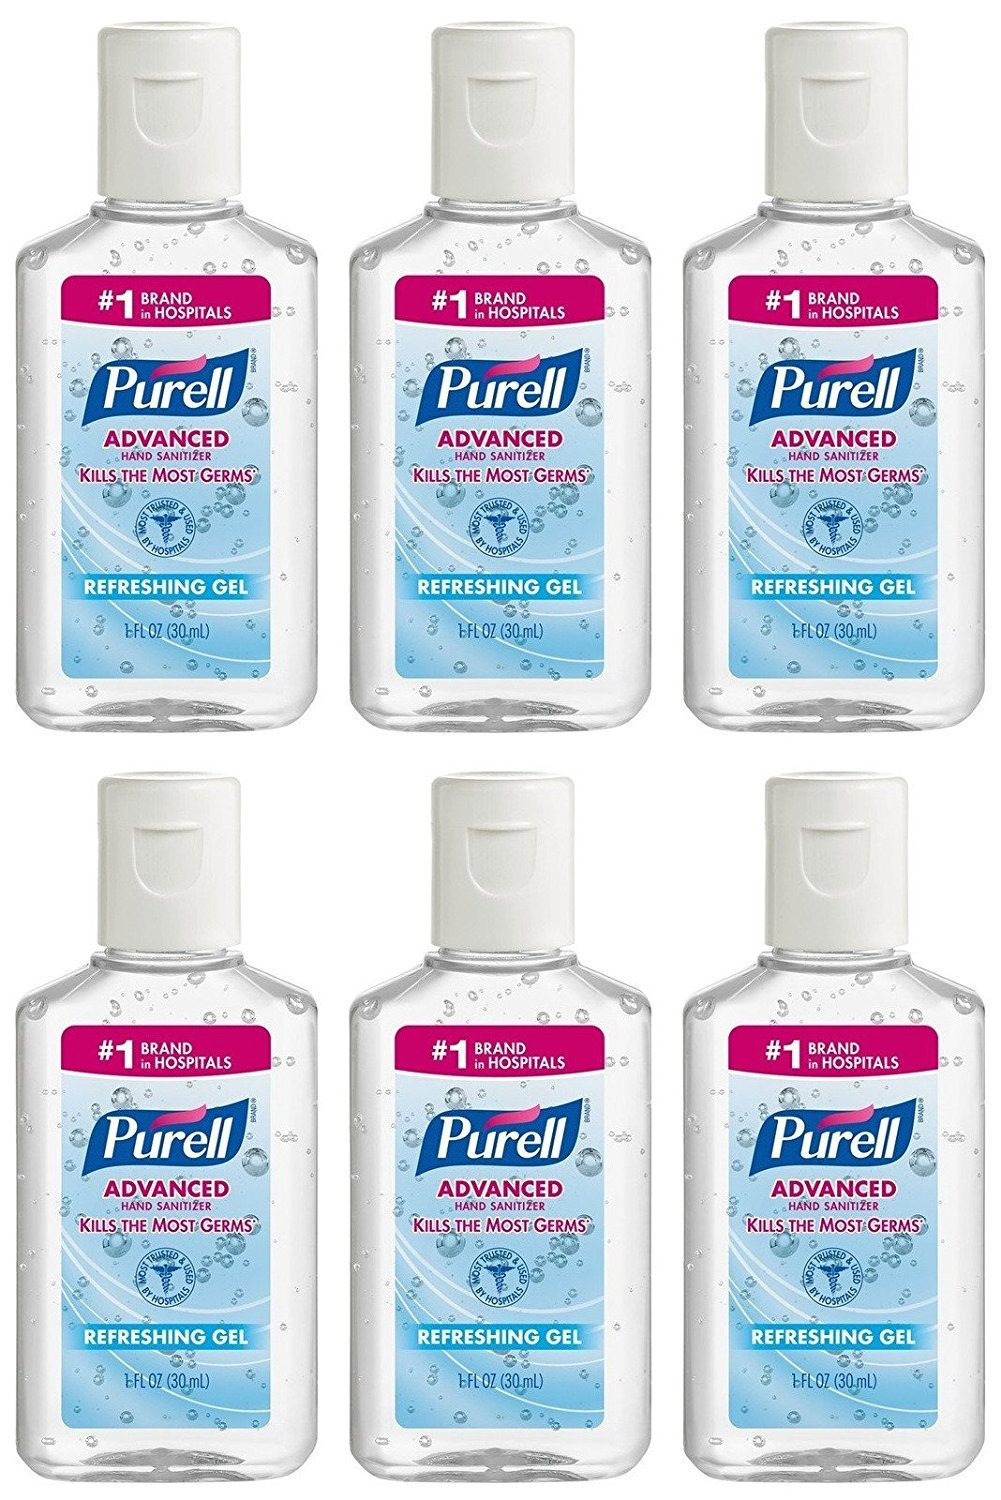 Purell Advanced Hand Sanitizer Refreshing Gel, 1 Fl oz (6-Pack)